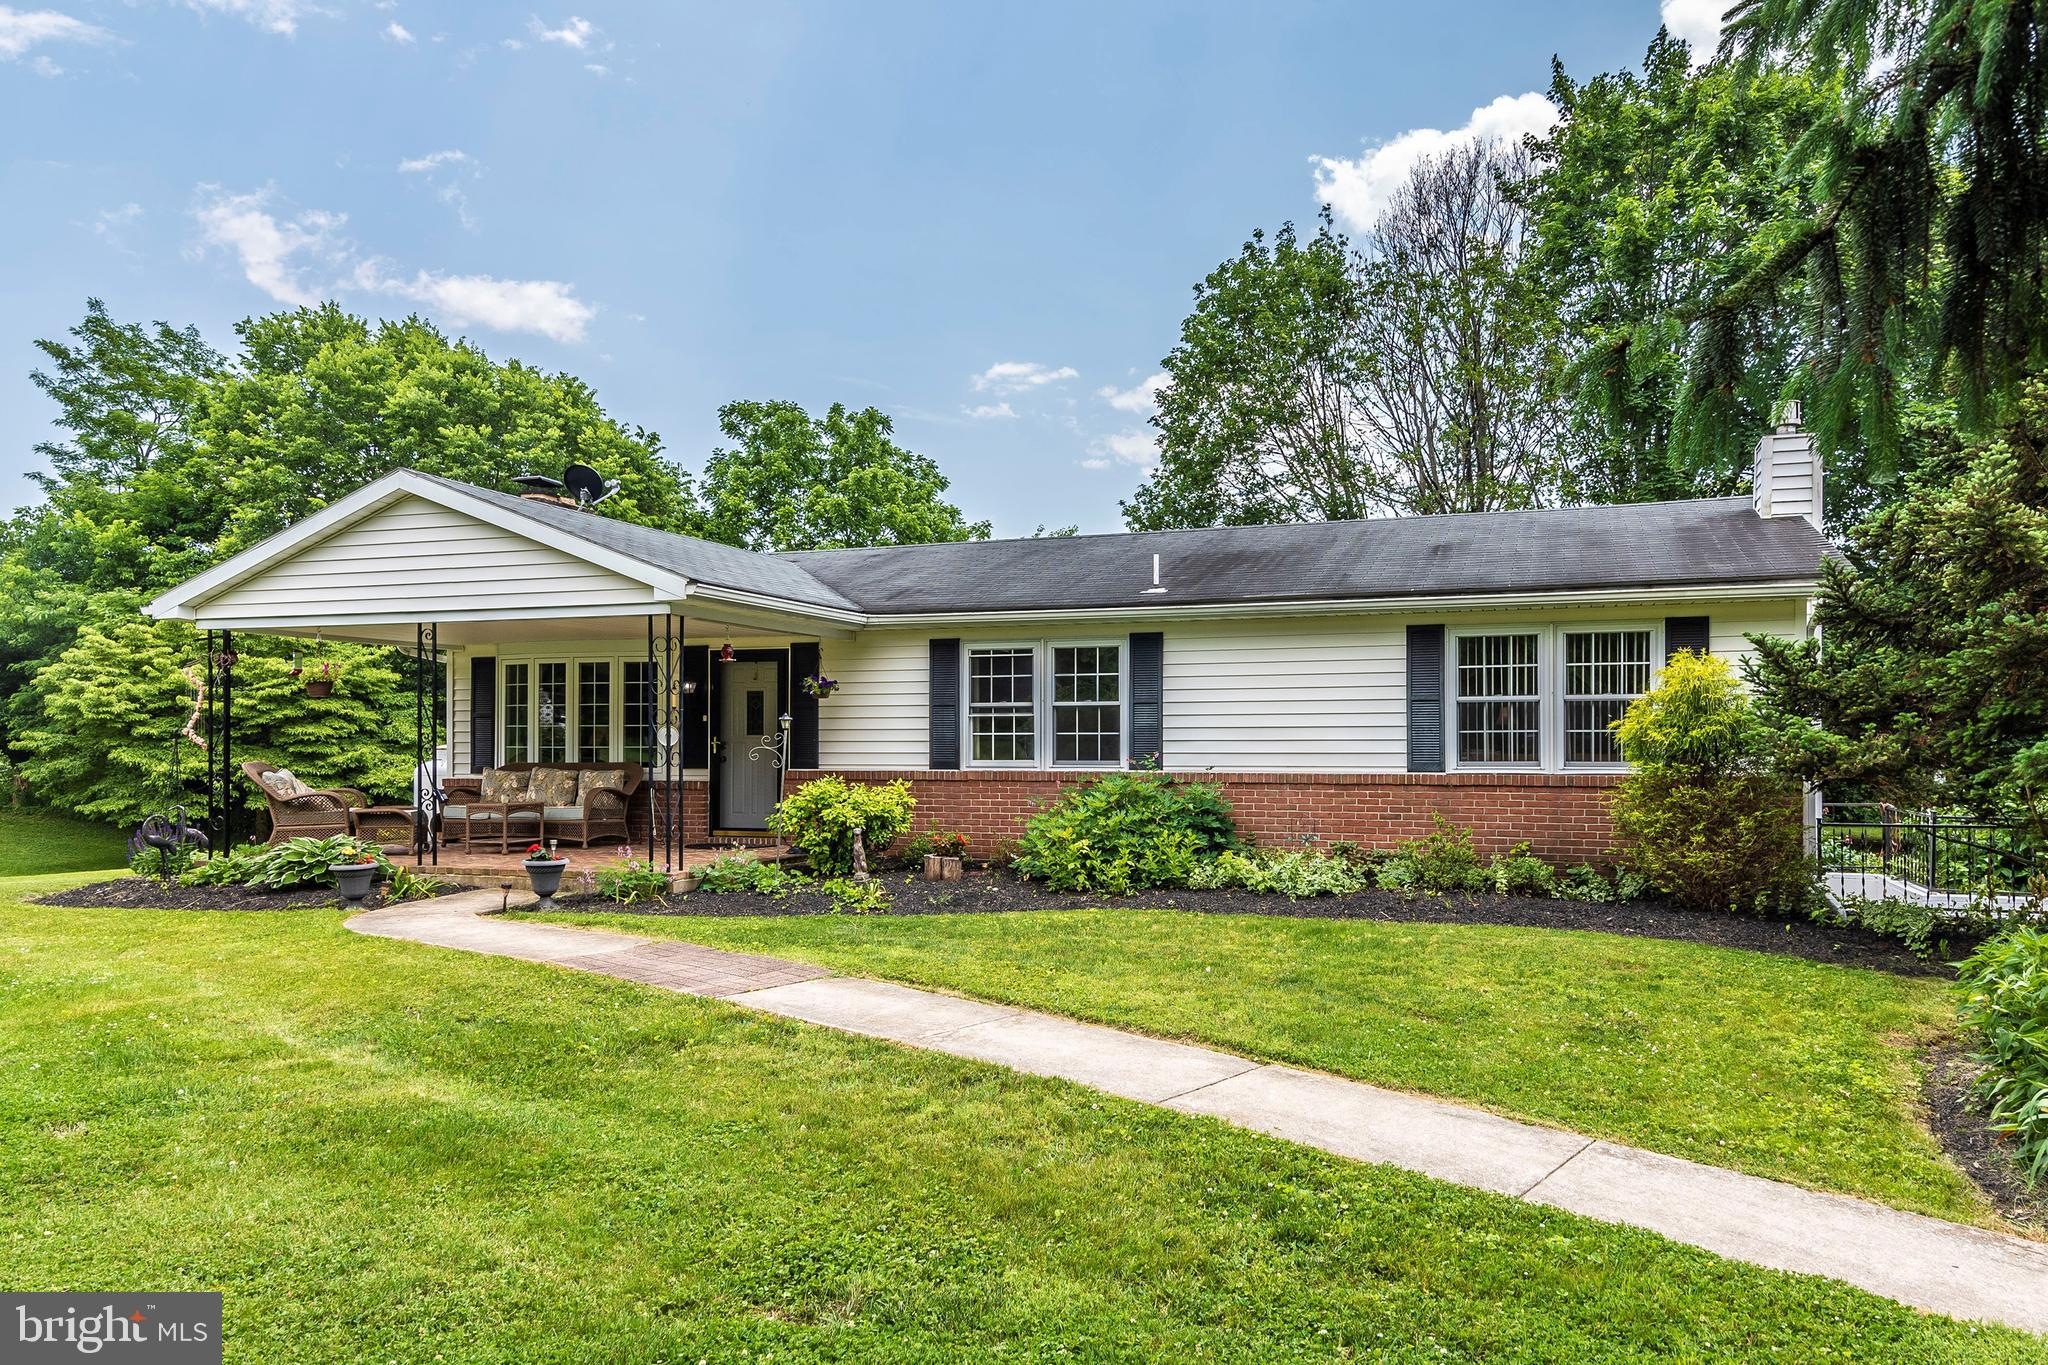 609 VALLEY ROAD, KNOXVILLE, MD 21758